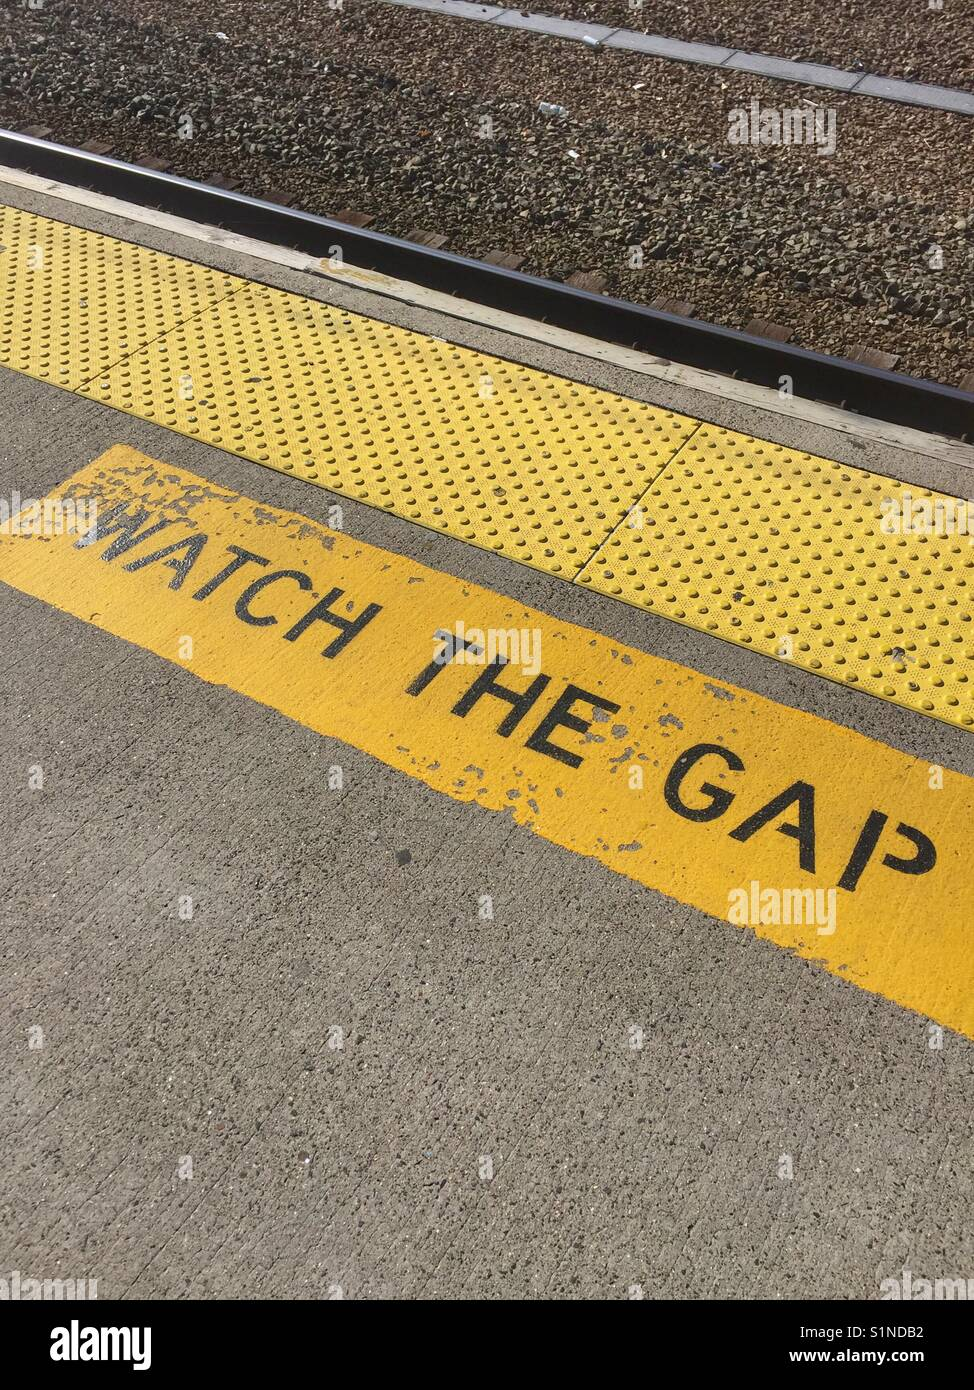 A Watch the Gap sign at a train station in New Haven, CT. - Stock Image